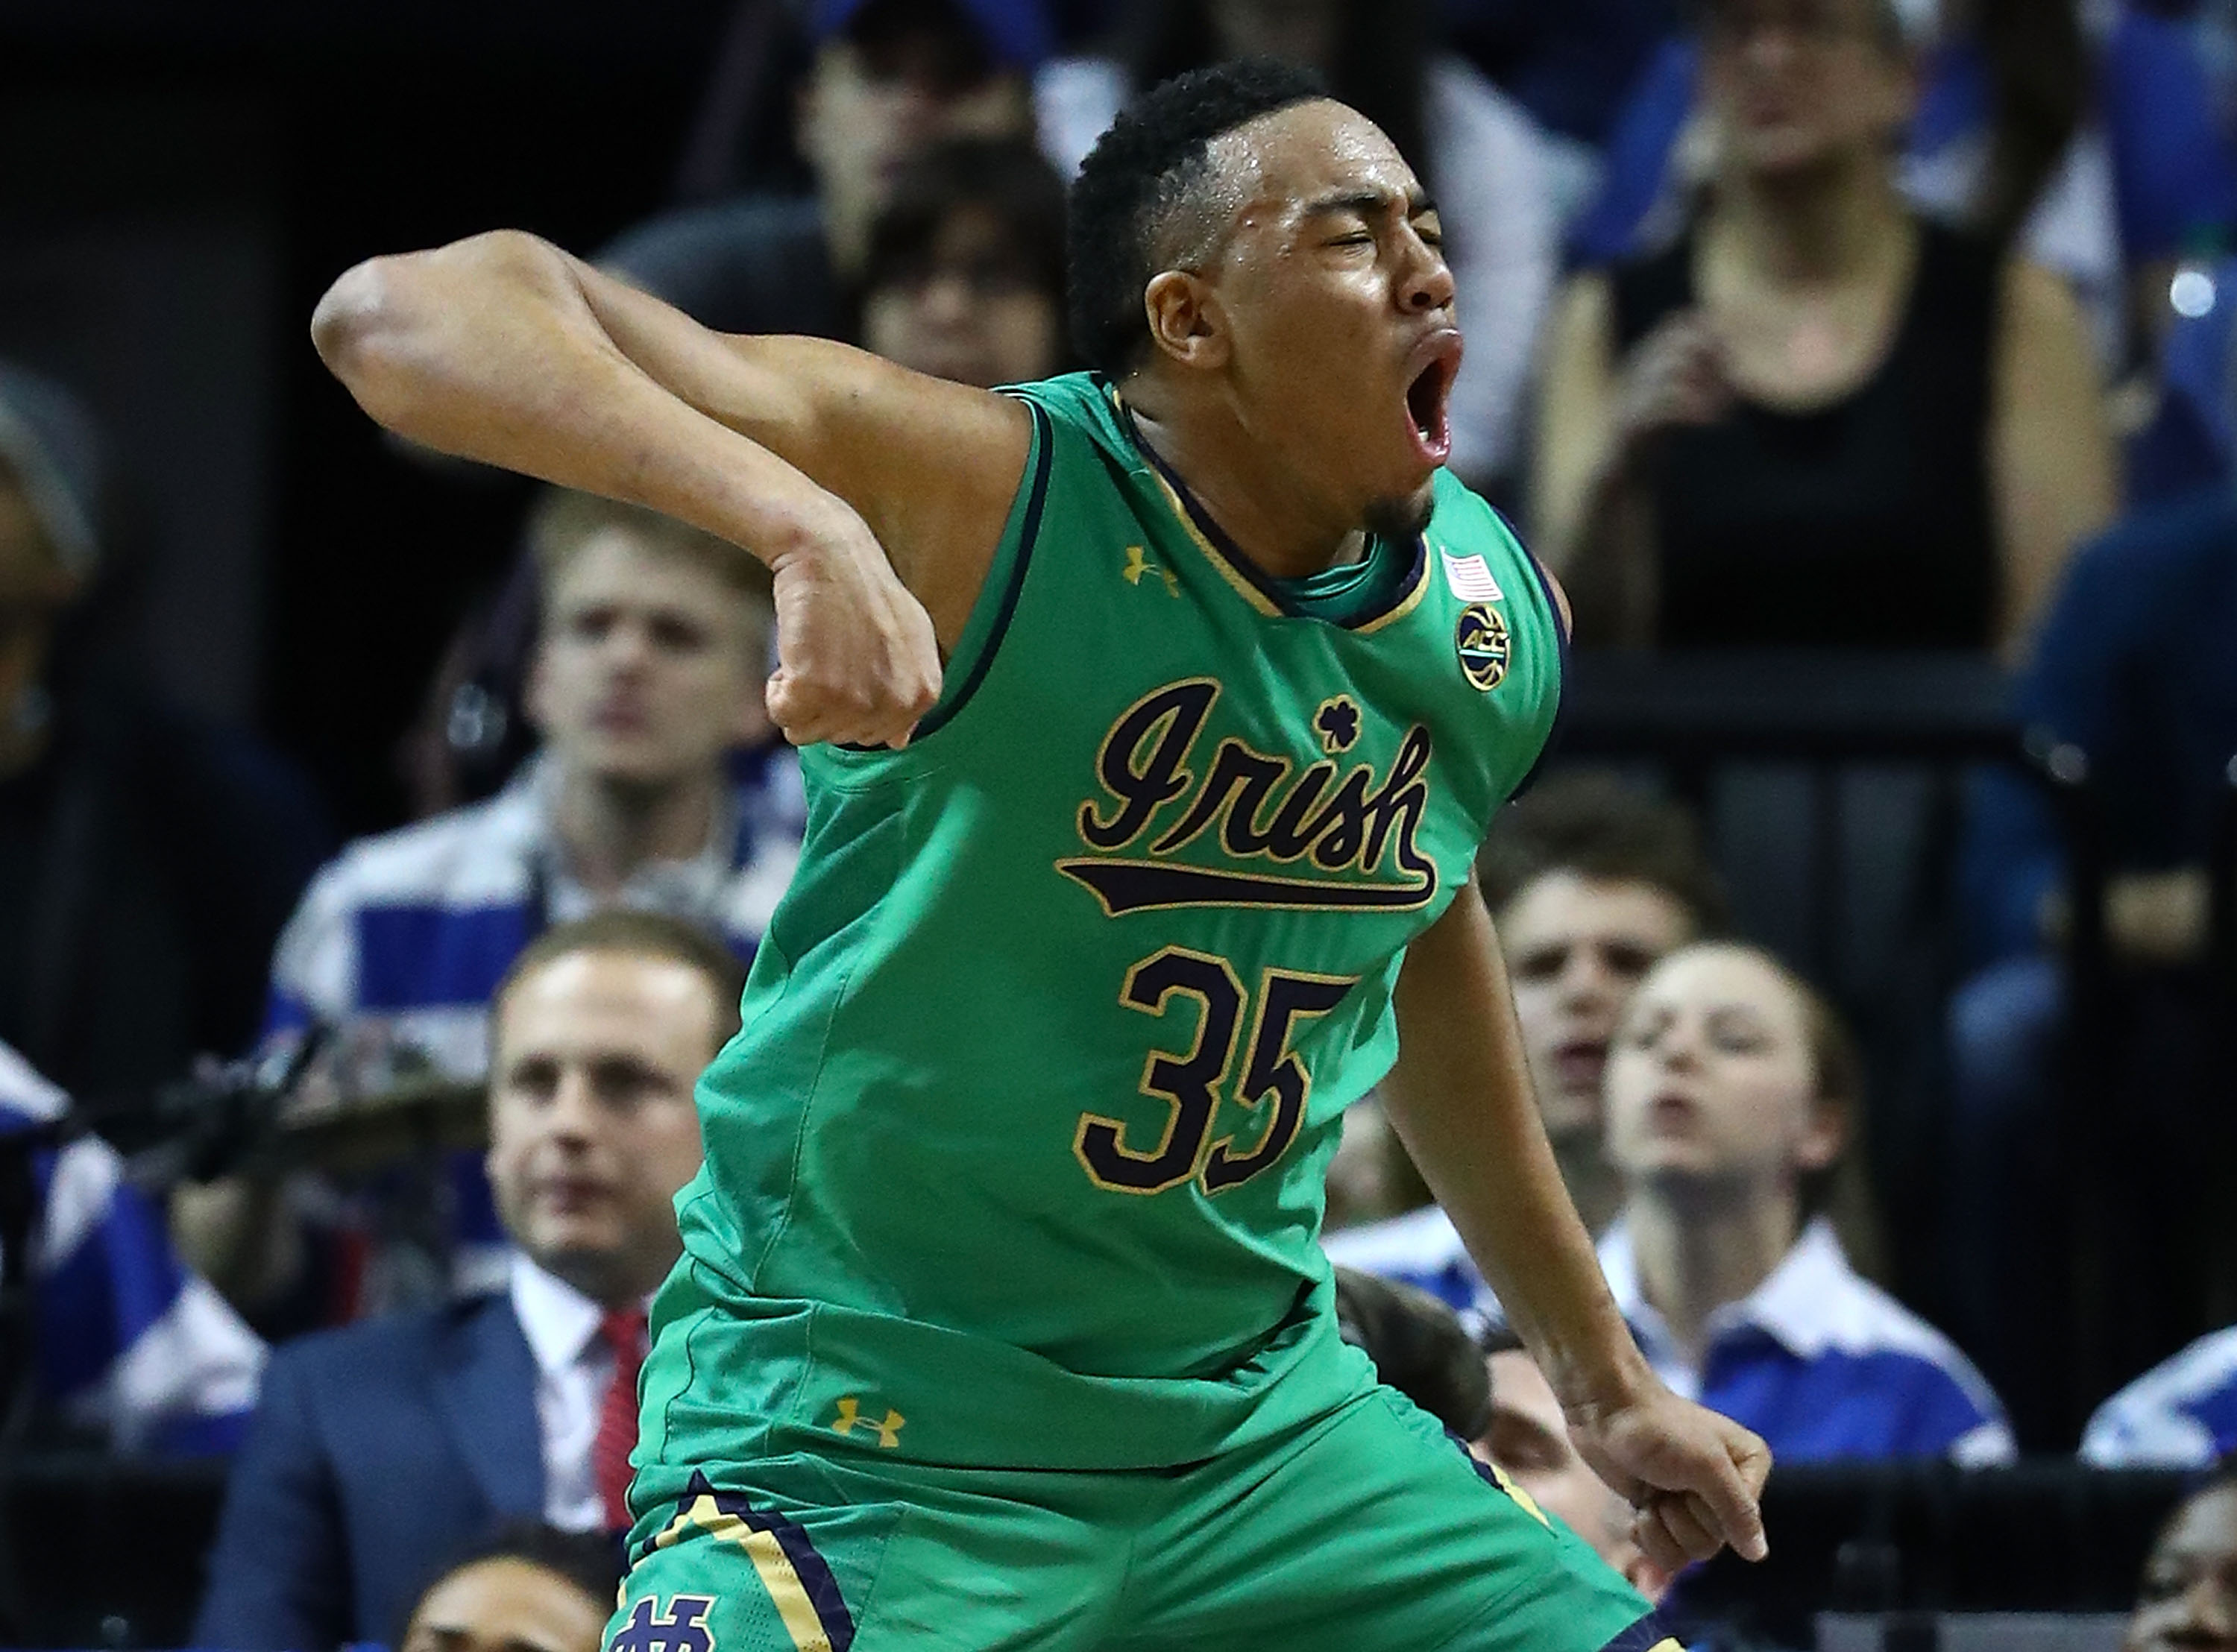 Reflecting on the ACC Tournament and looking forward to more March Madness